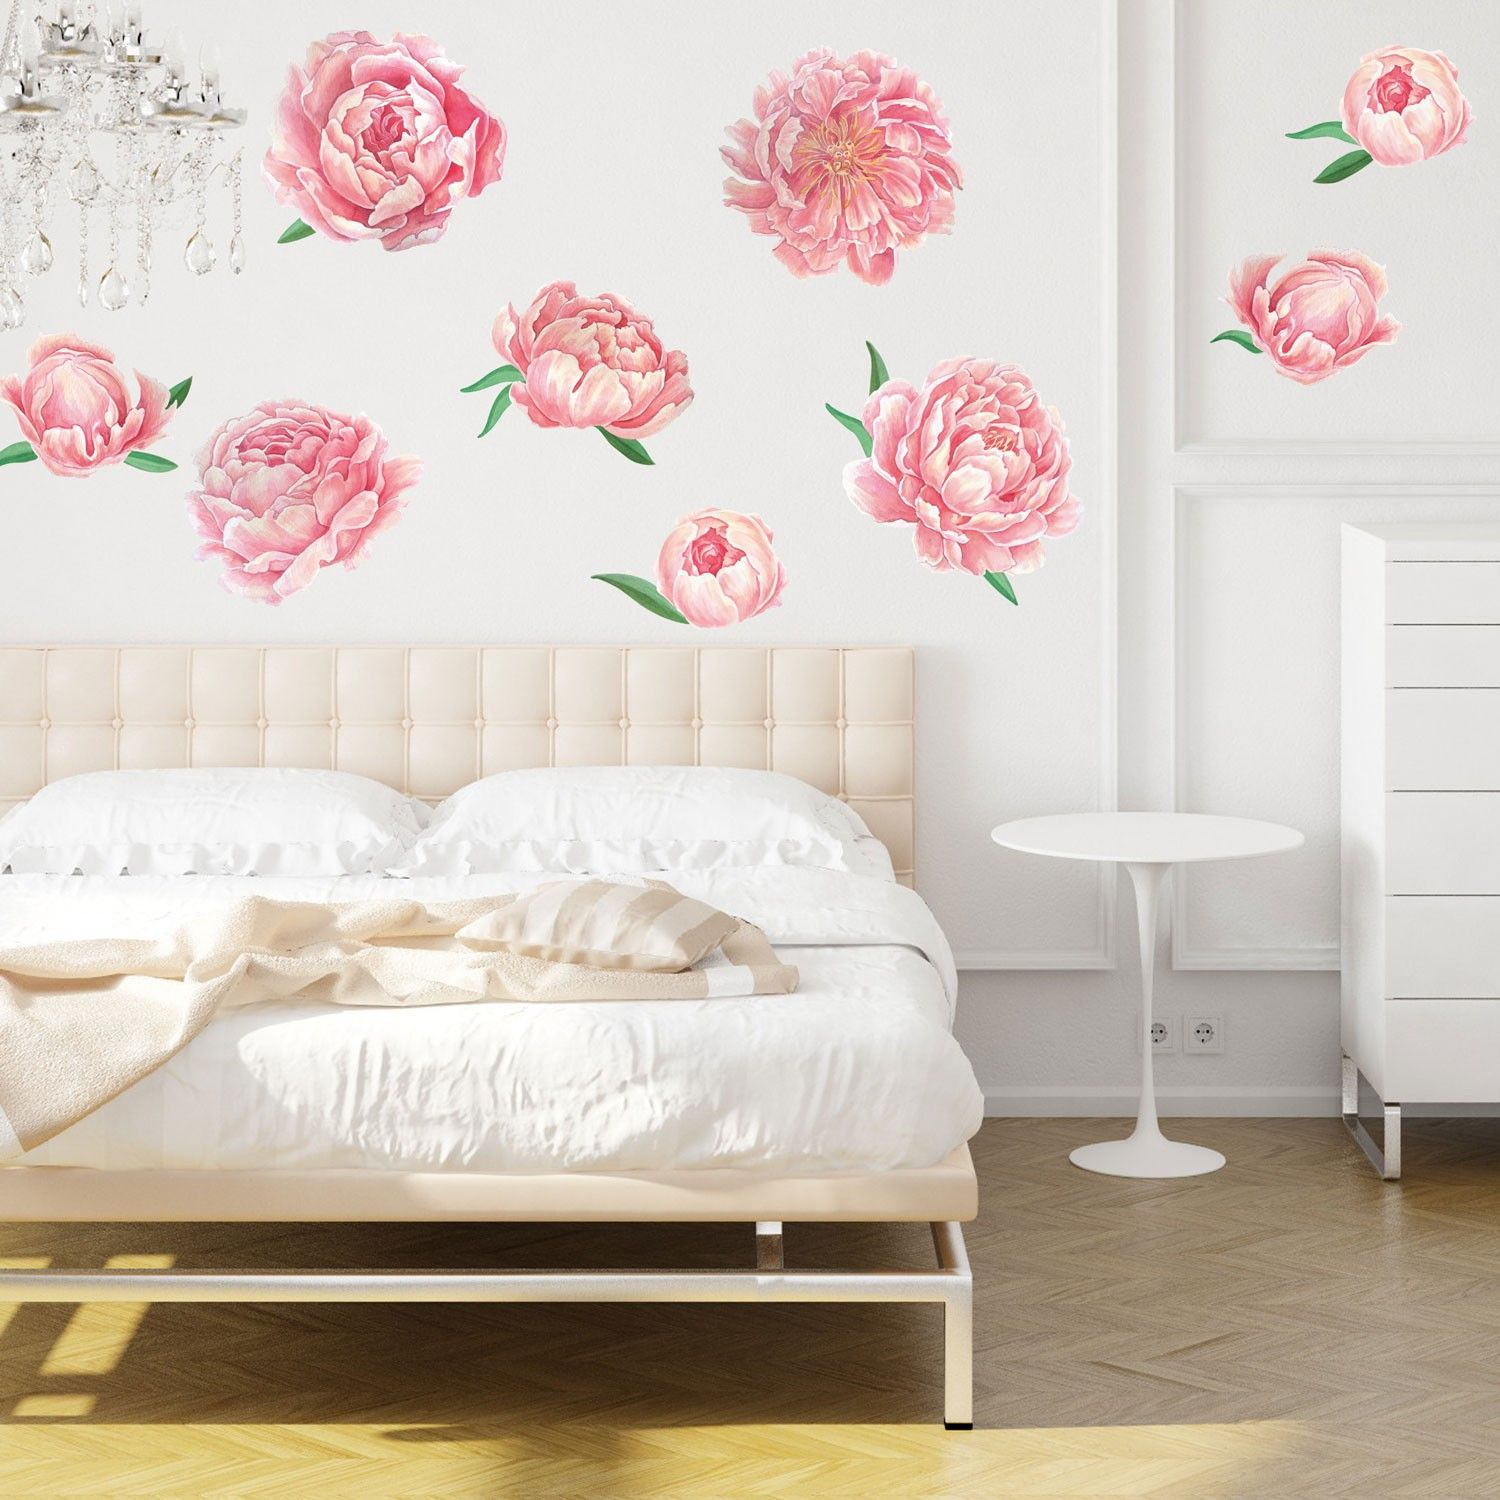 Pretty Pink Peonies Flower Watercolor Wall Decal Sticker Kit